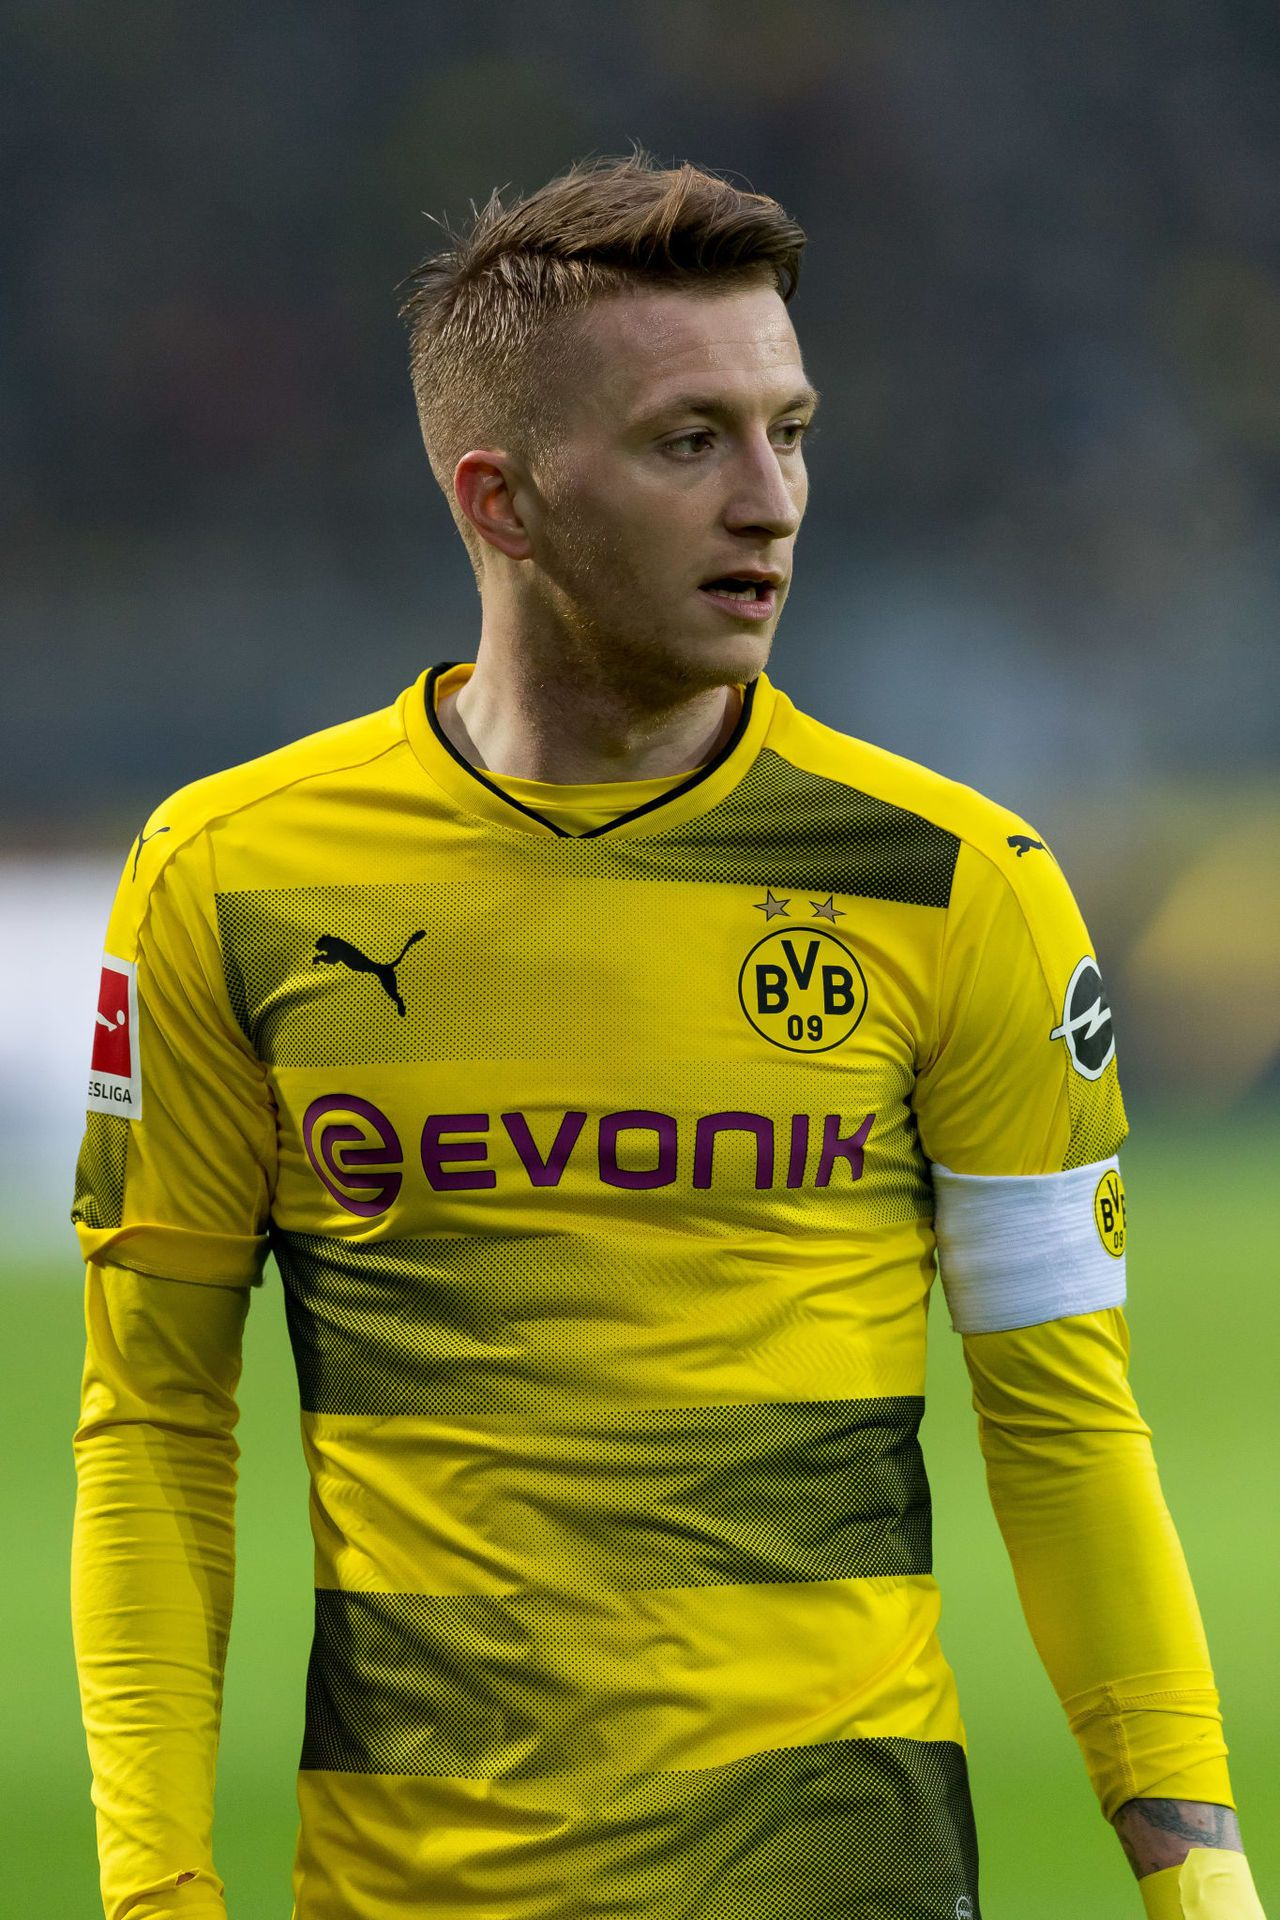 football is my aesthetic Marco reus, Football players